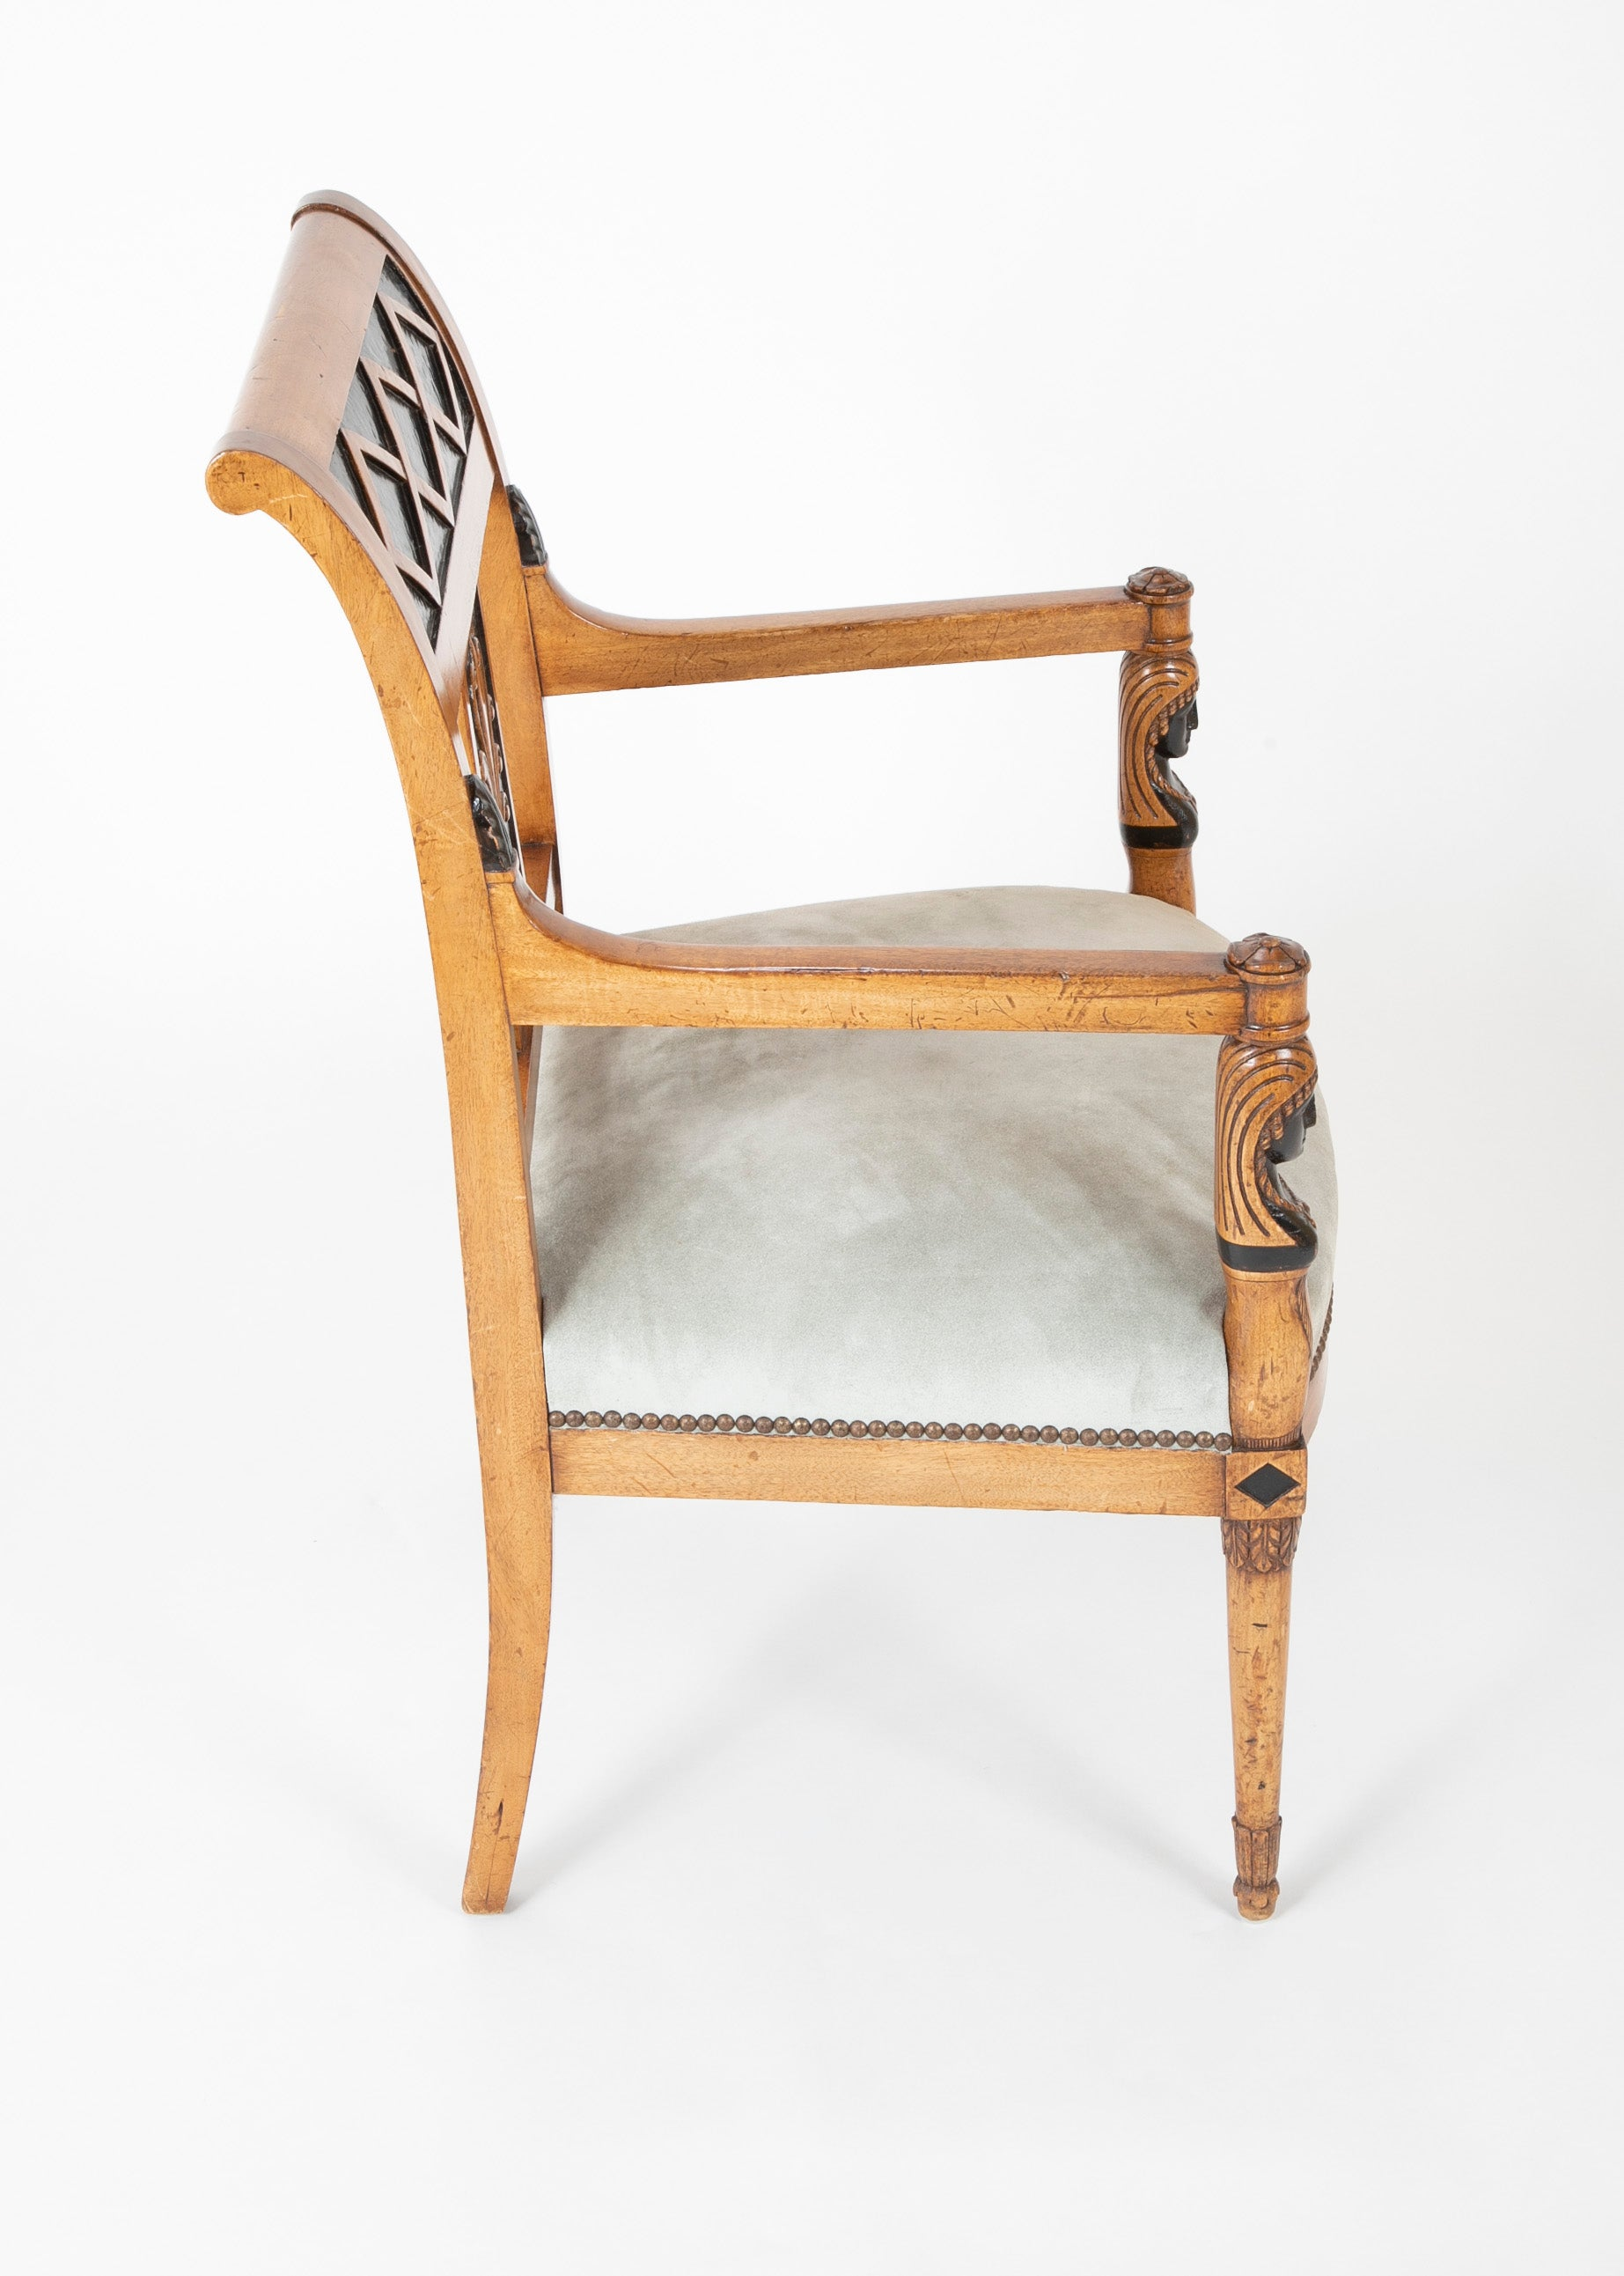 A Pair of Continental Neoclassical Chairs with Carved Egyptian Head on the Arm